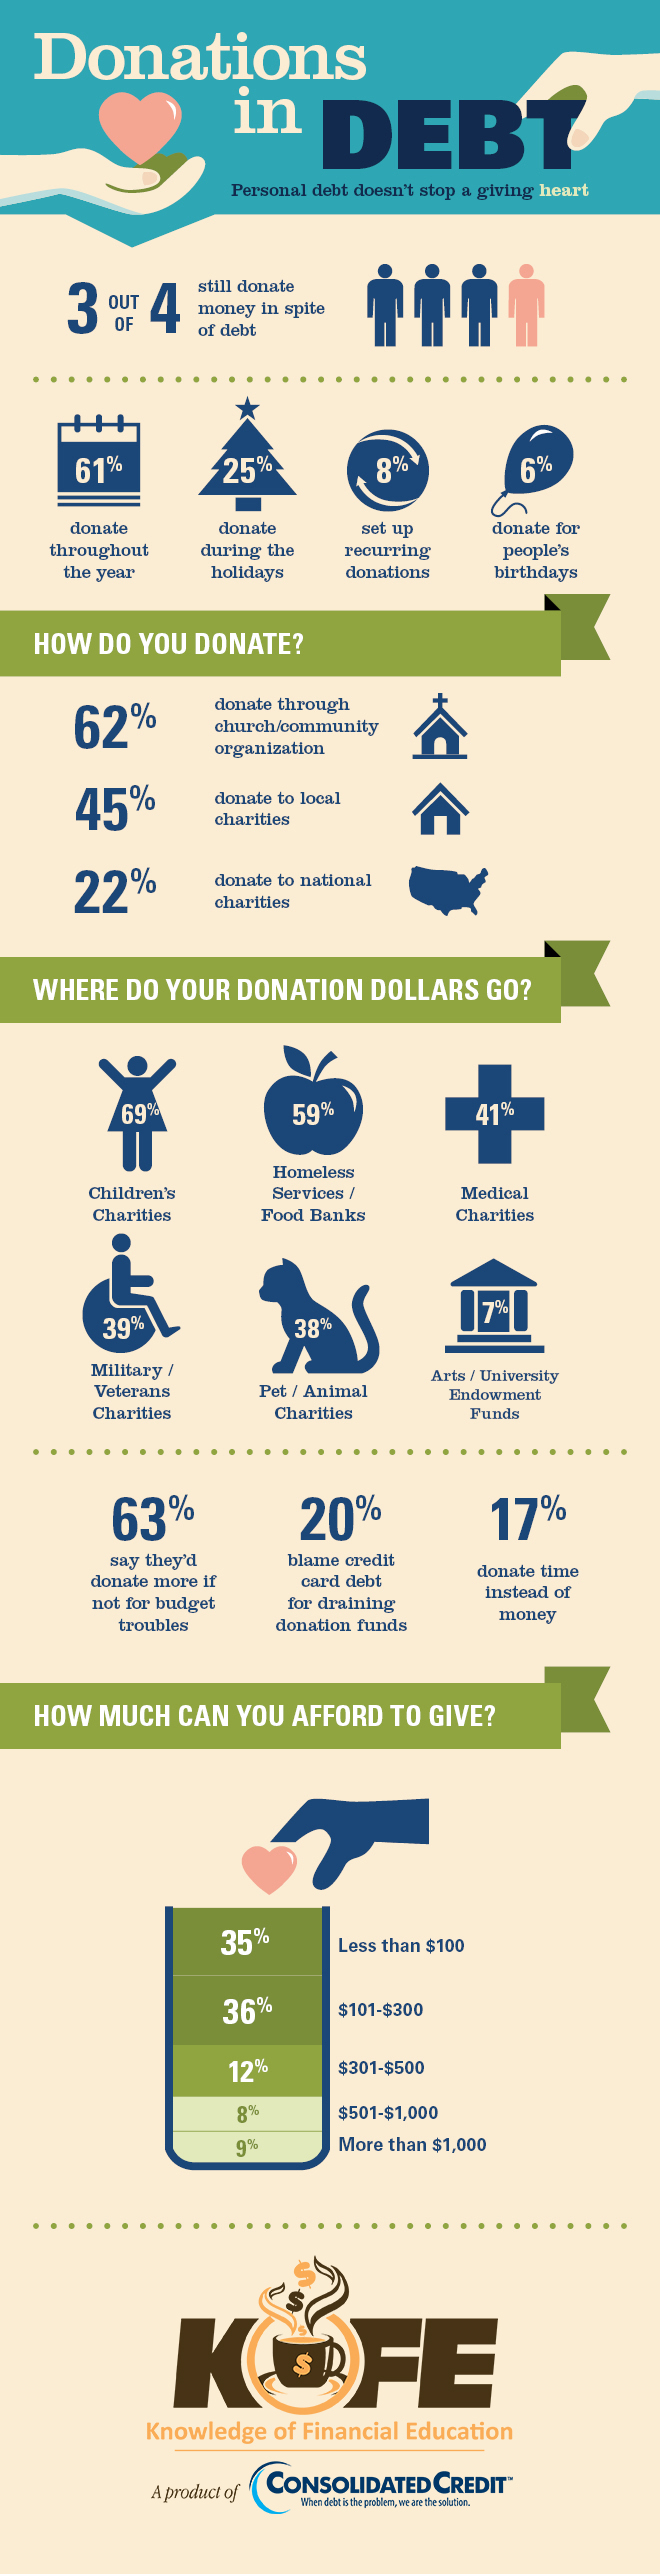 Donations in Debt infographic